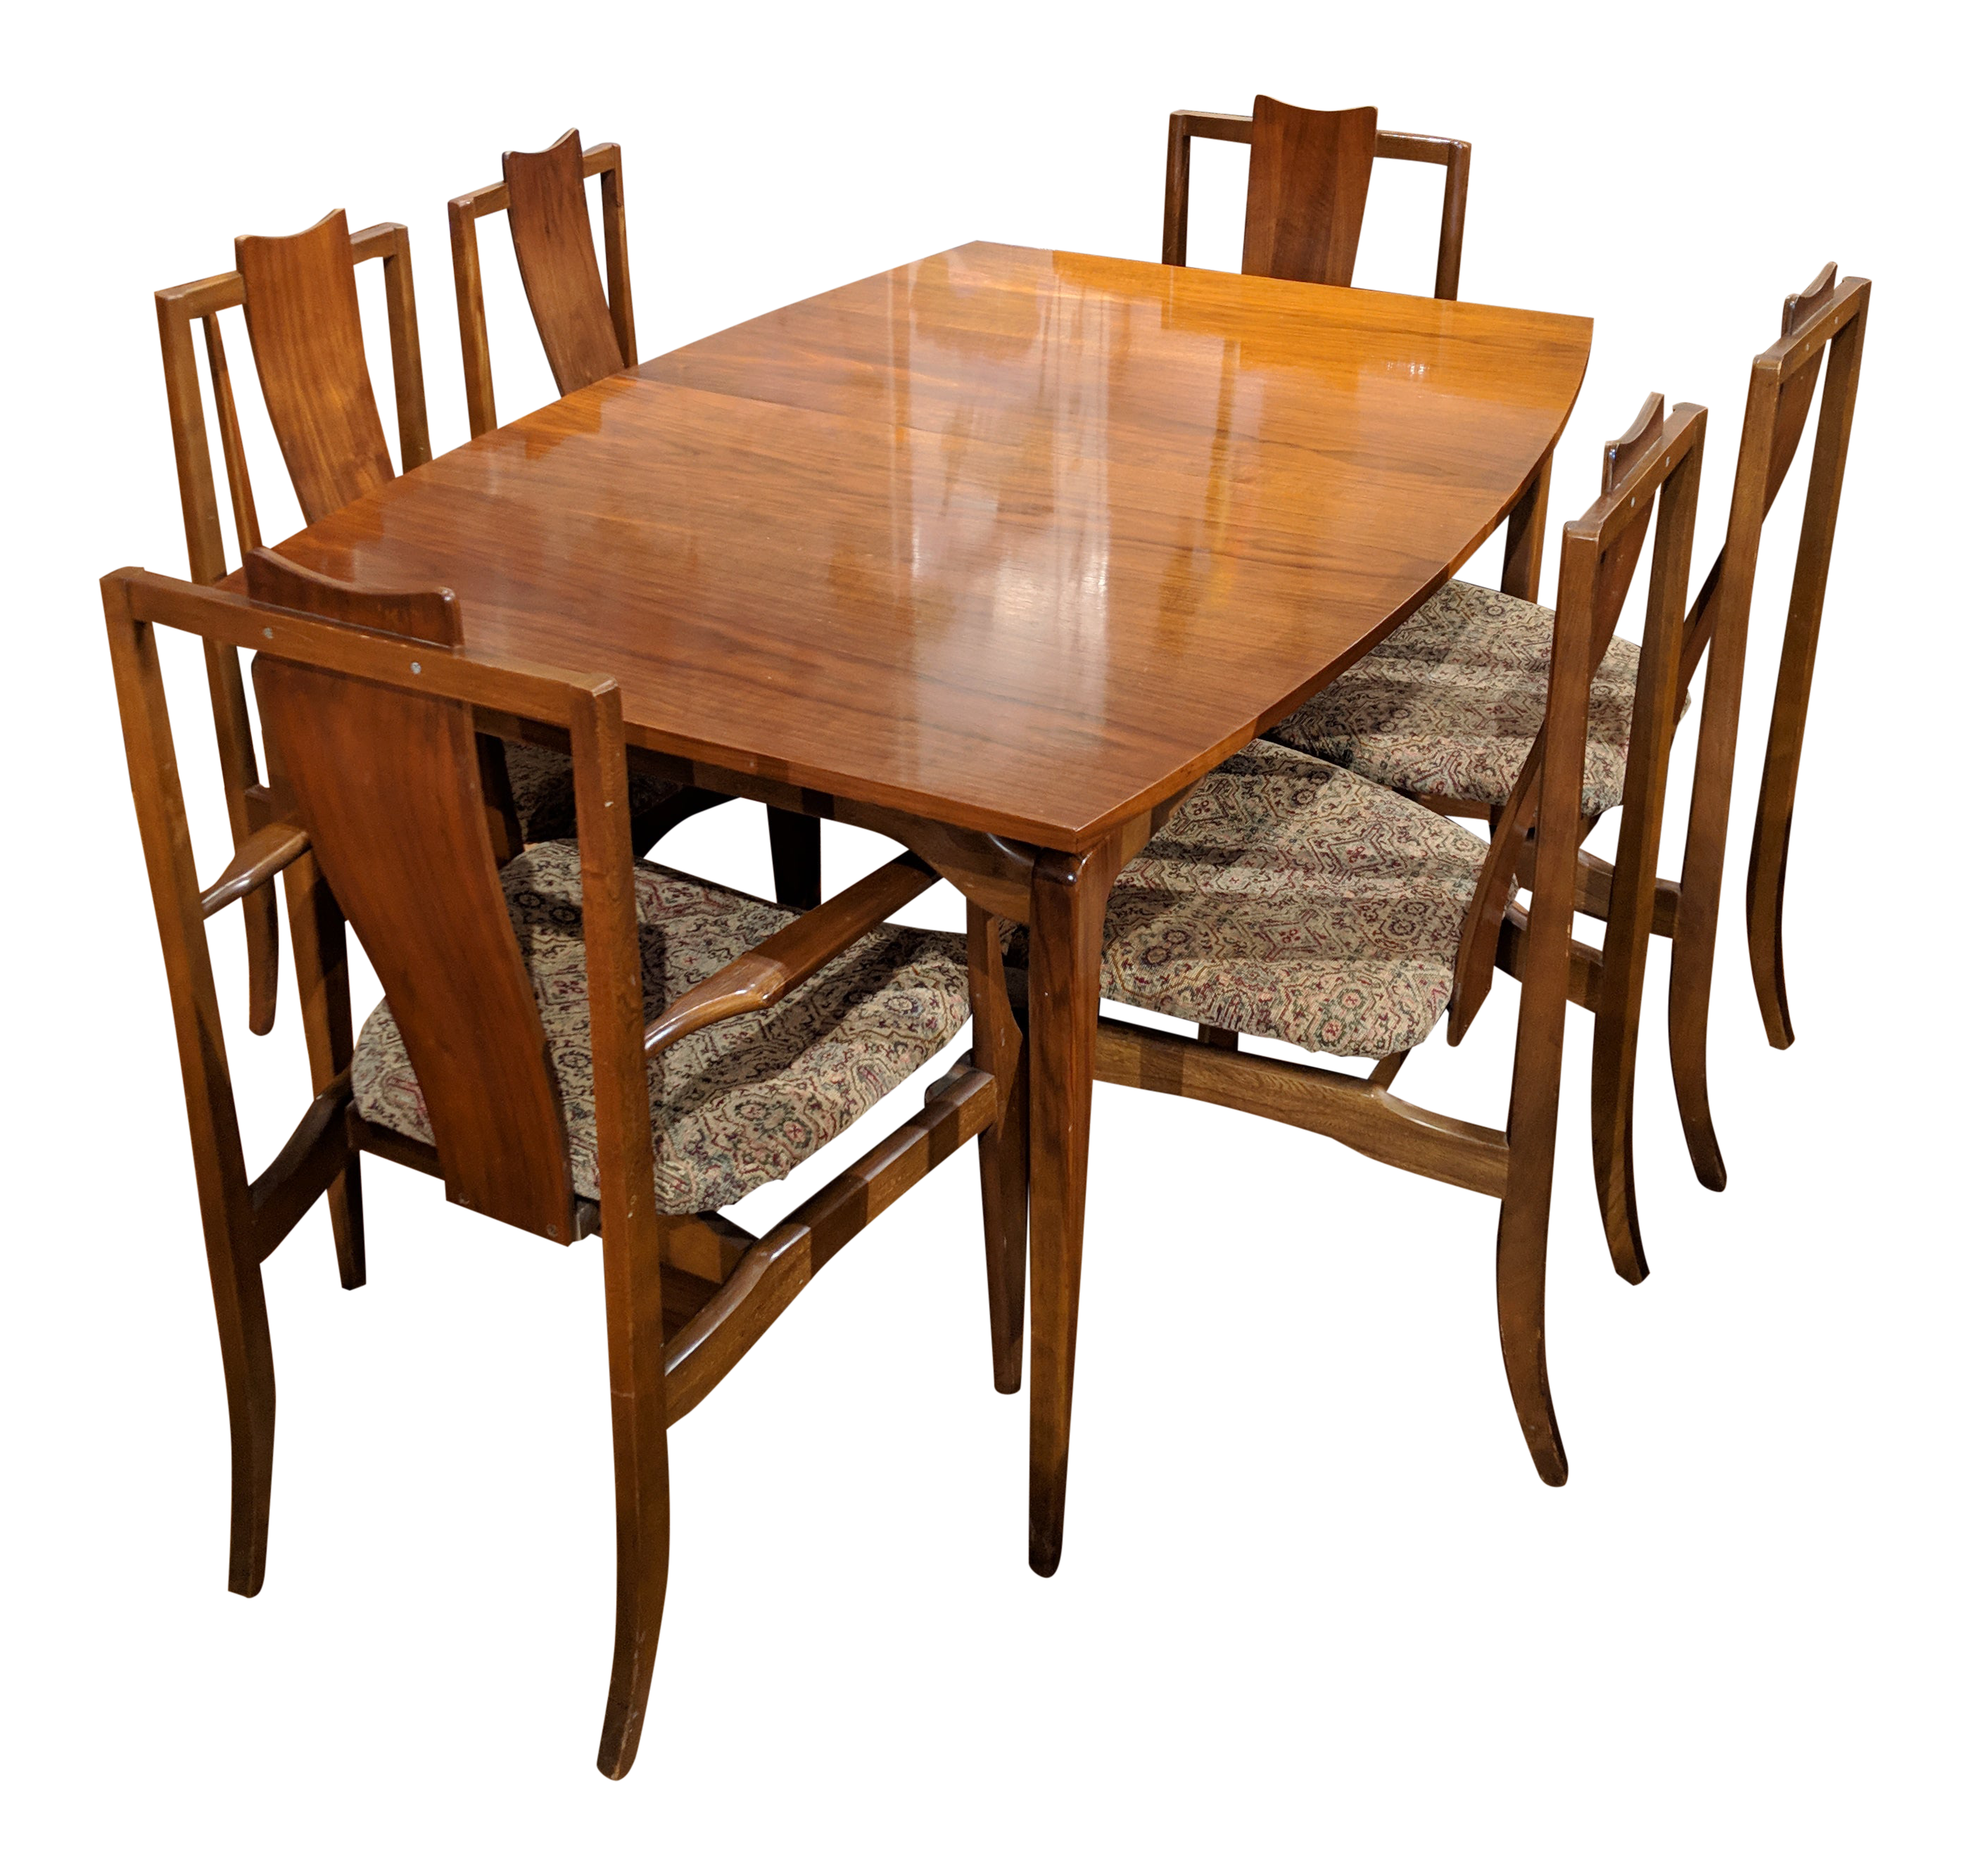 Vintage Young Furniture Dining Set 7 Pieces On Chairish Com Dining Furniture Furniture Dining Table Chairs